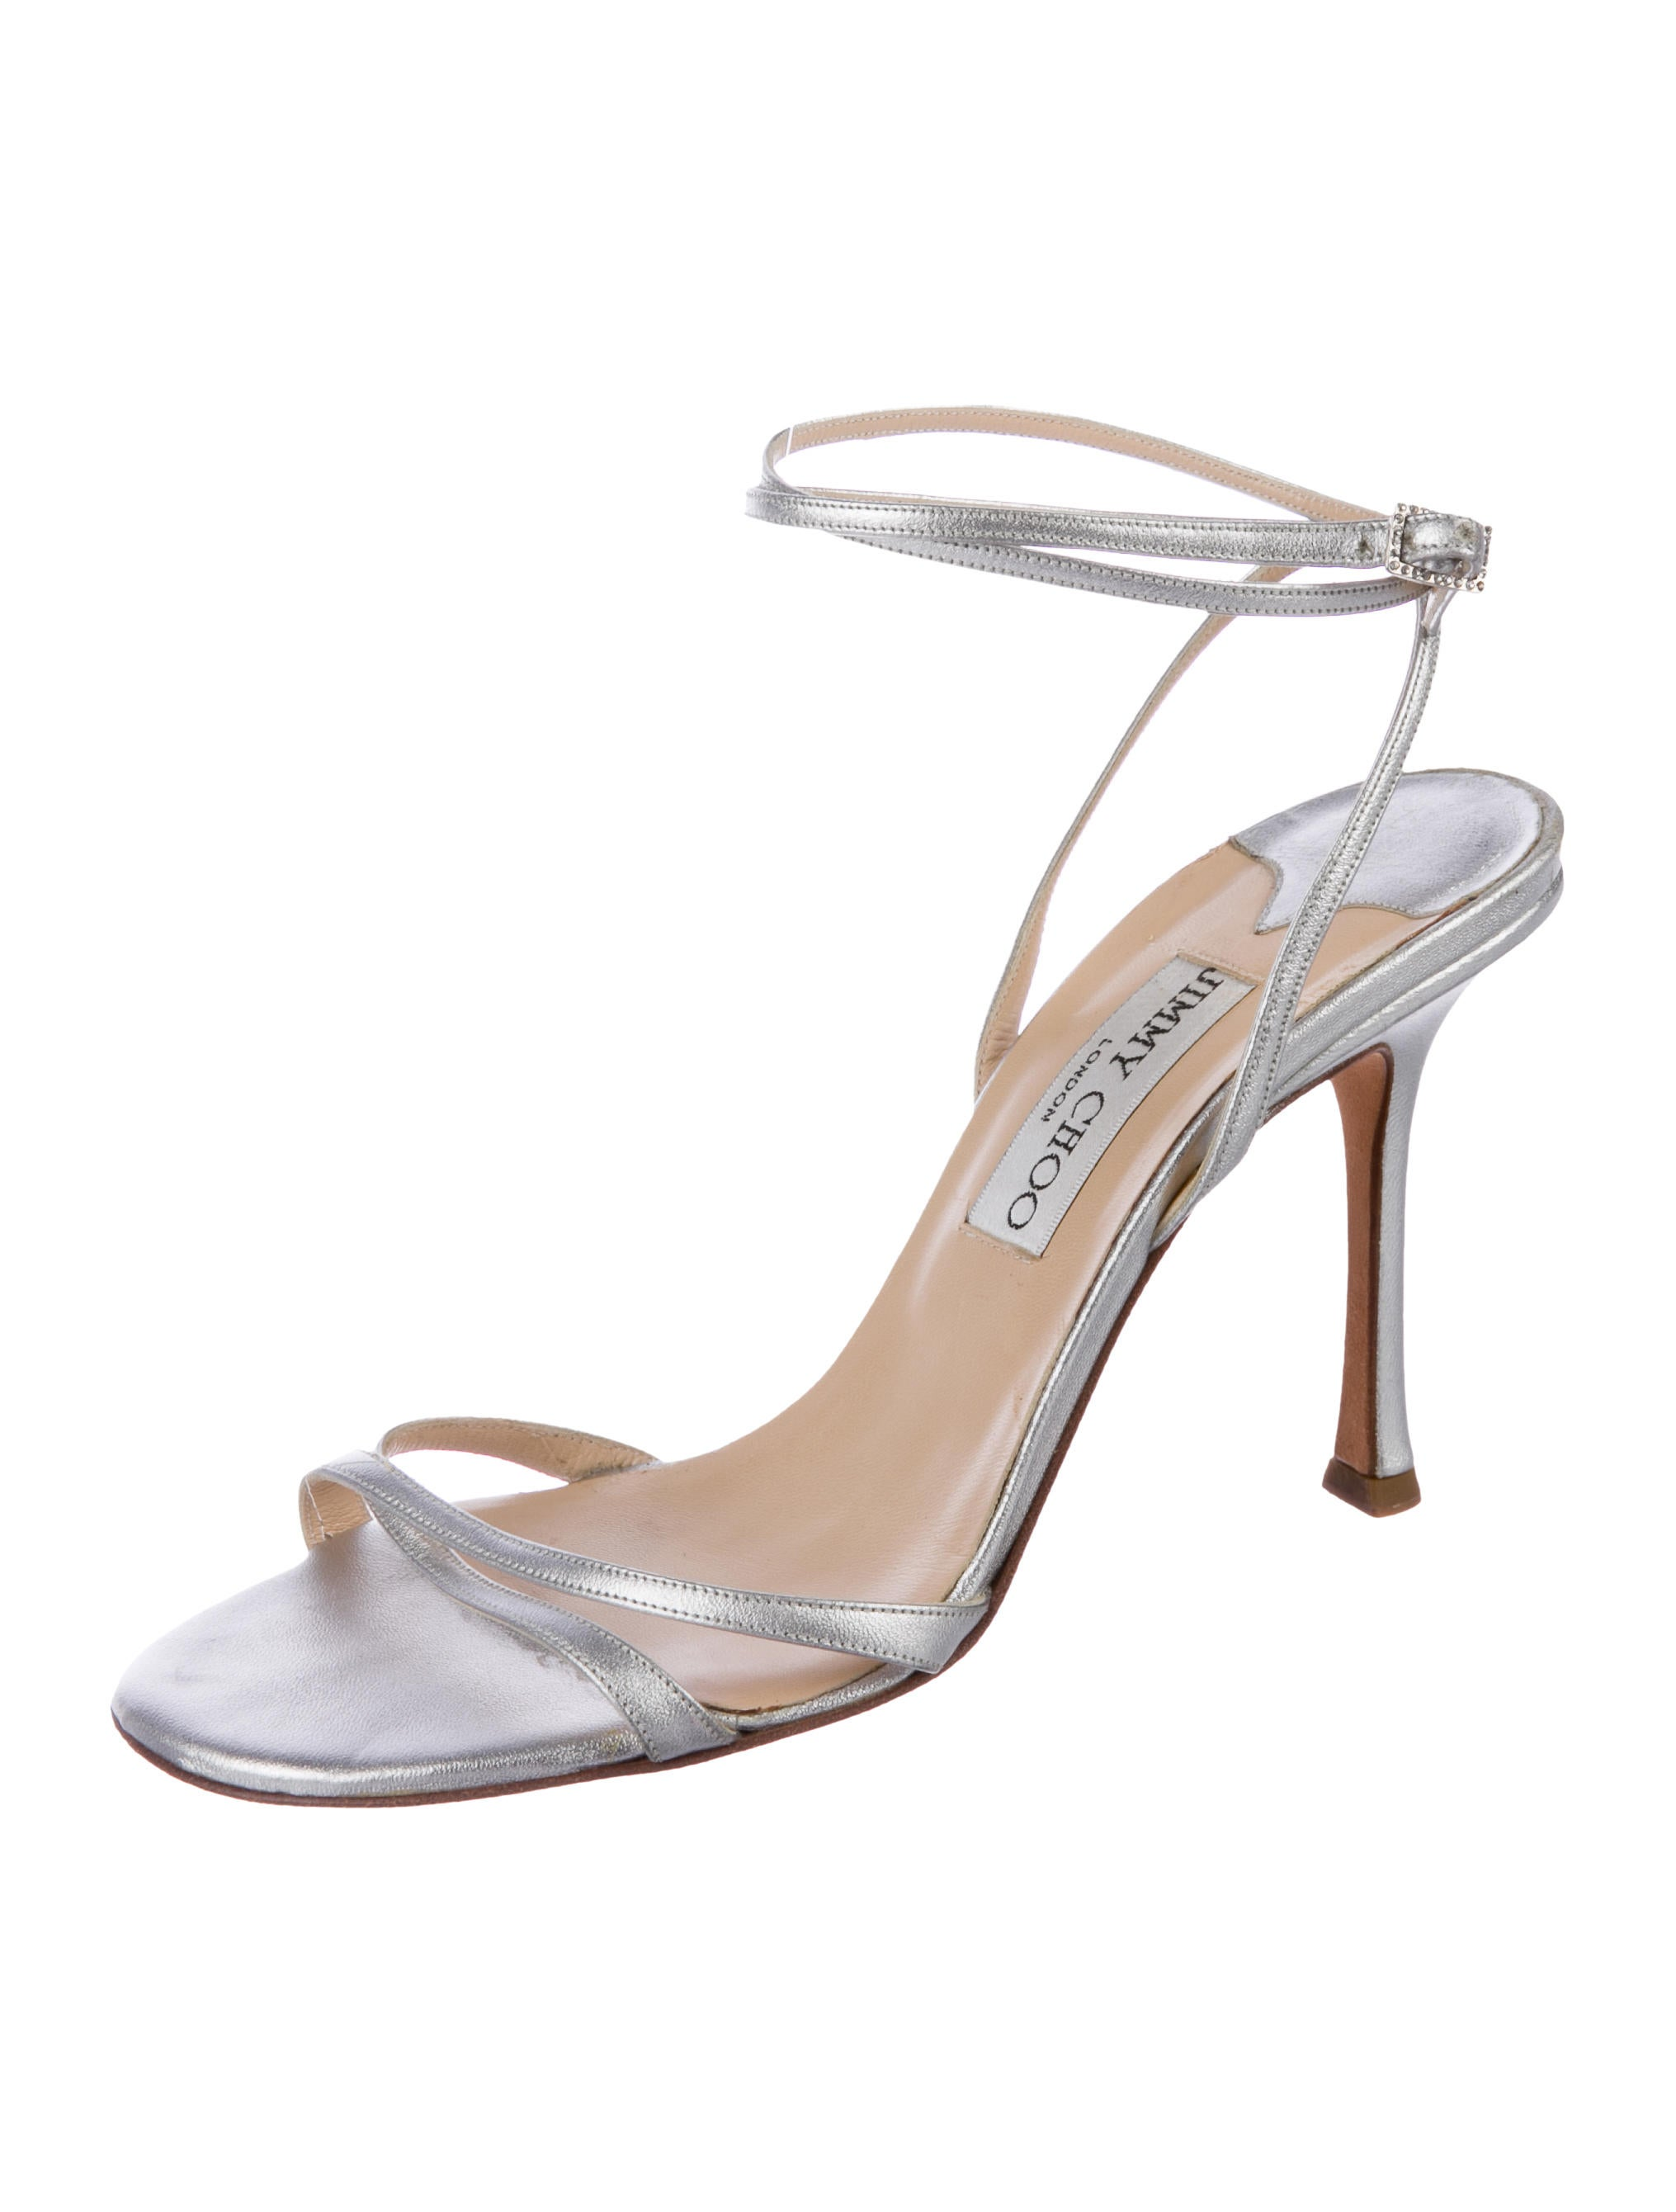 Jimmy Choo Wrap-Around Thong Sandals good selling cheap price explore sale online eastbay sale online wiki cheap online Vzp5PH